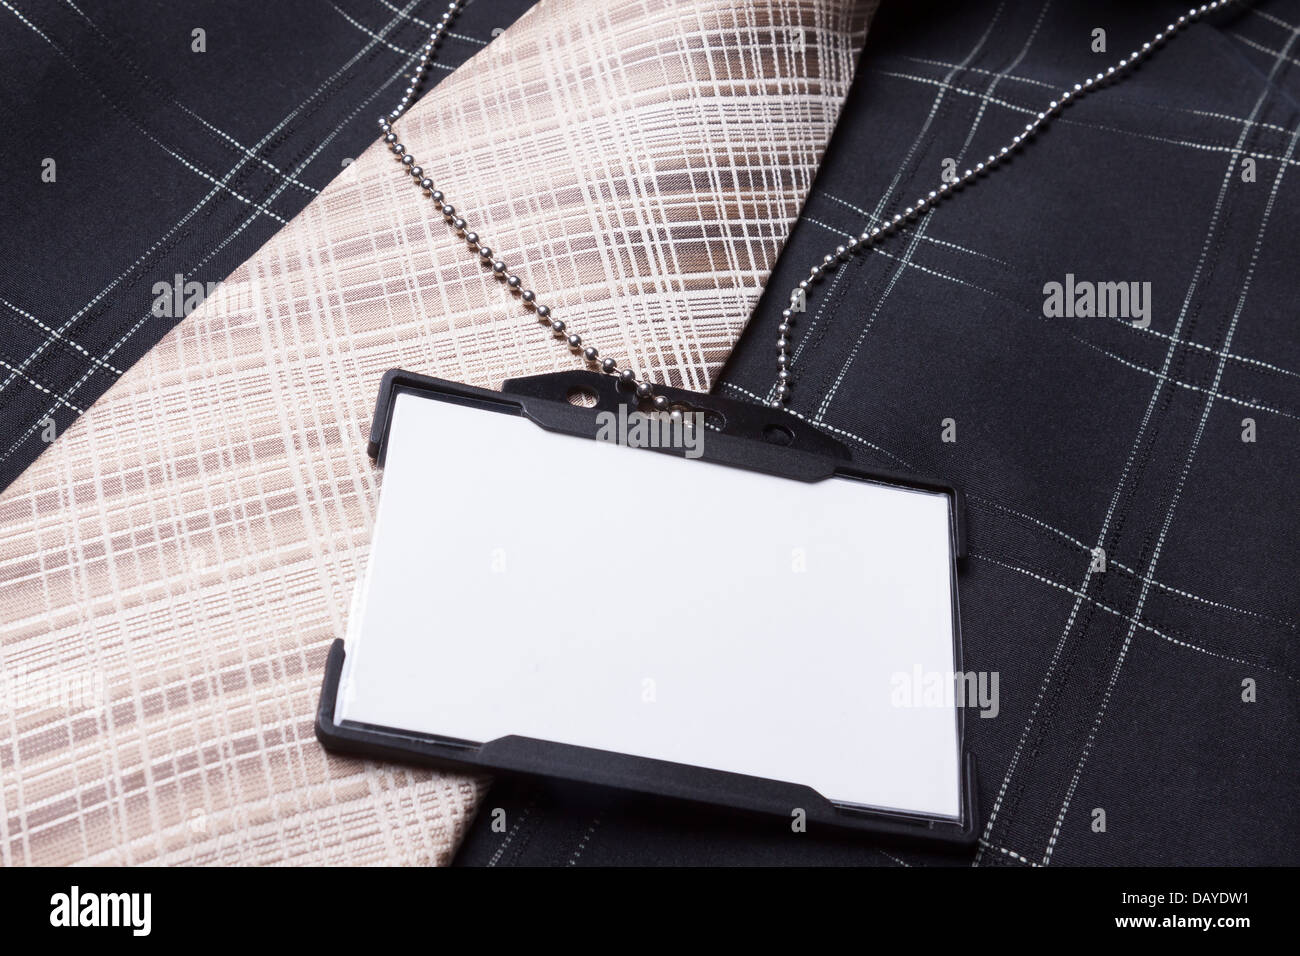 Card empty ID badge on man suit - Stock Image